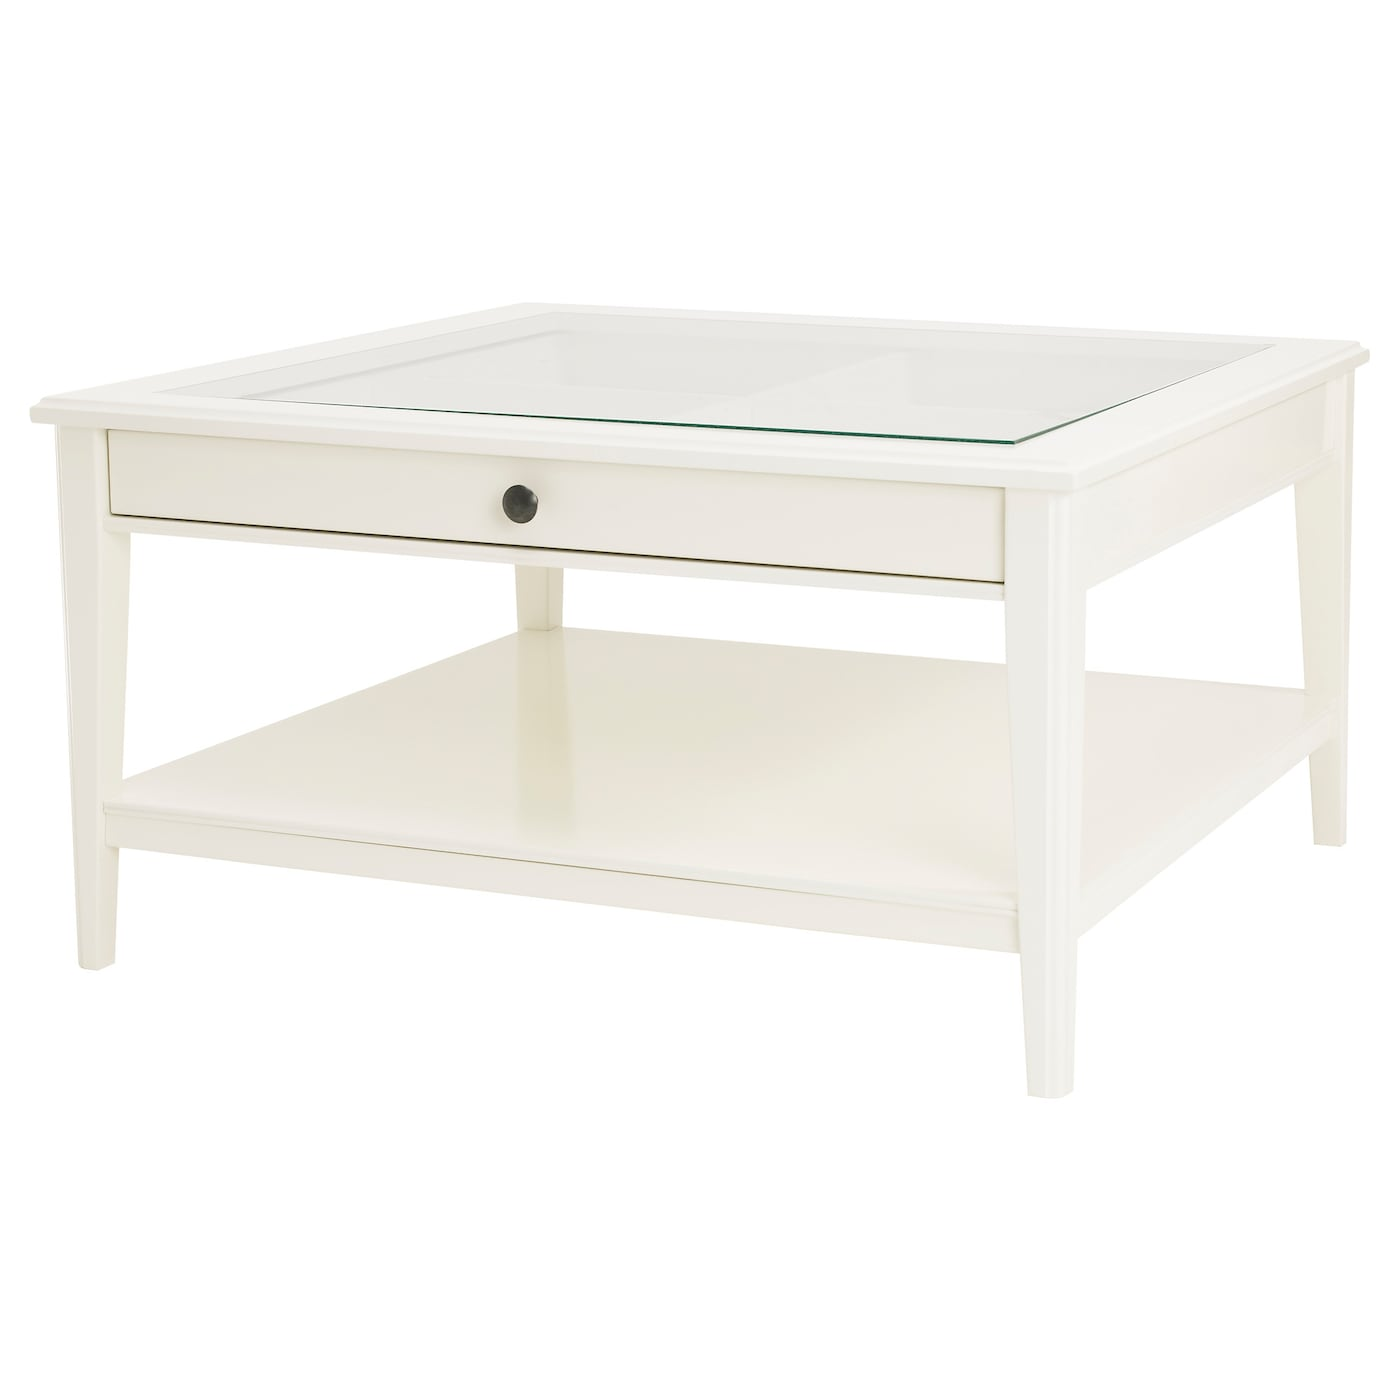 Ikea Liatorp Coffee Table Practical Storage E Underneath The Top